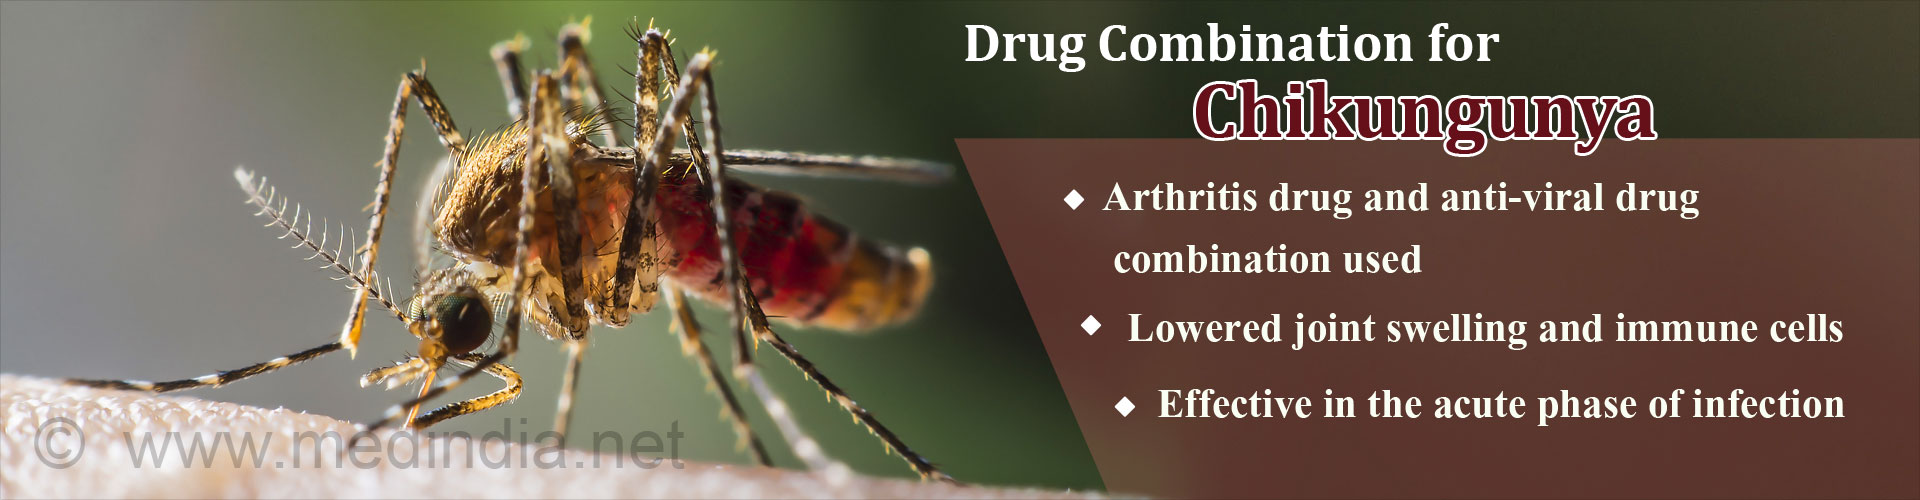 Drug Combination for Chikungunya - Arthritis drug and anti-viral drug combination used - Lowered joint swelling and immune cells - Effective in the acute phase of infection